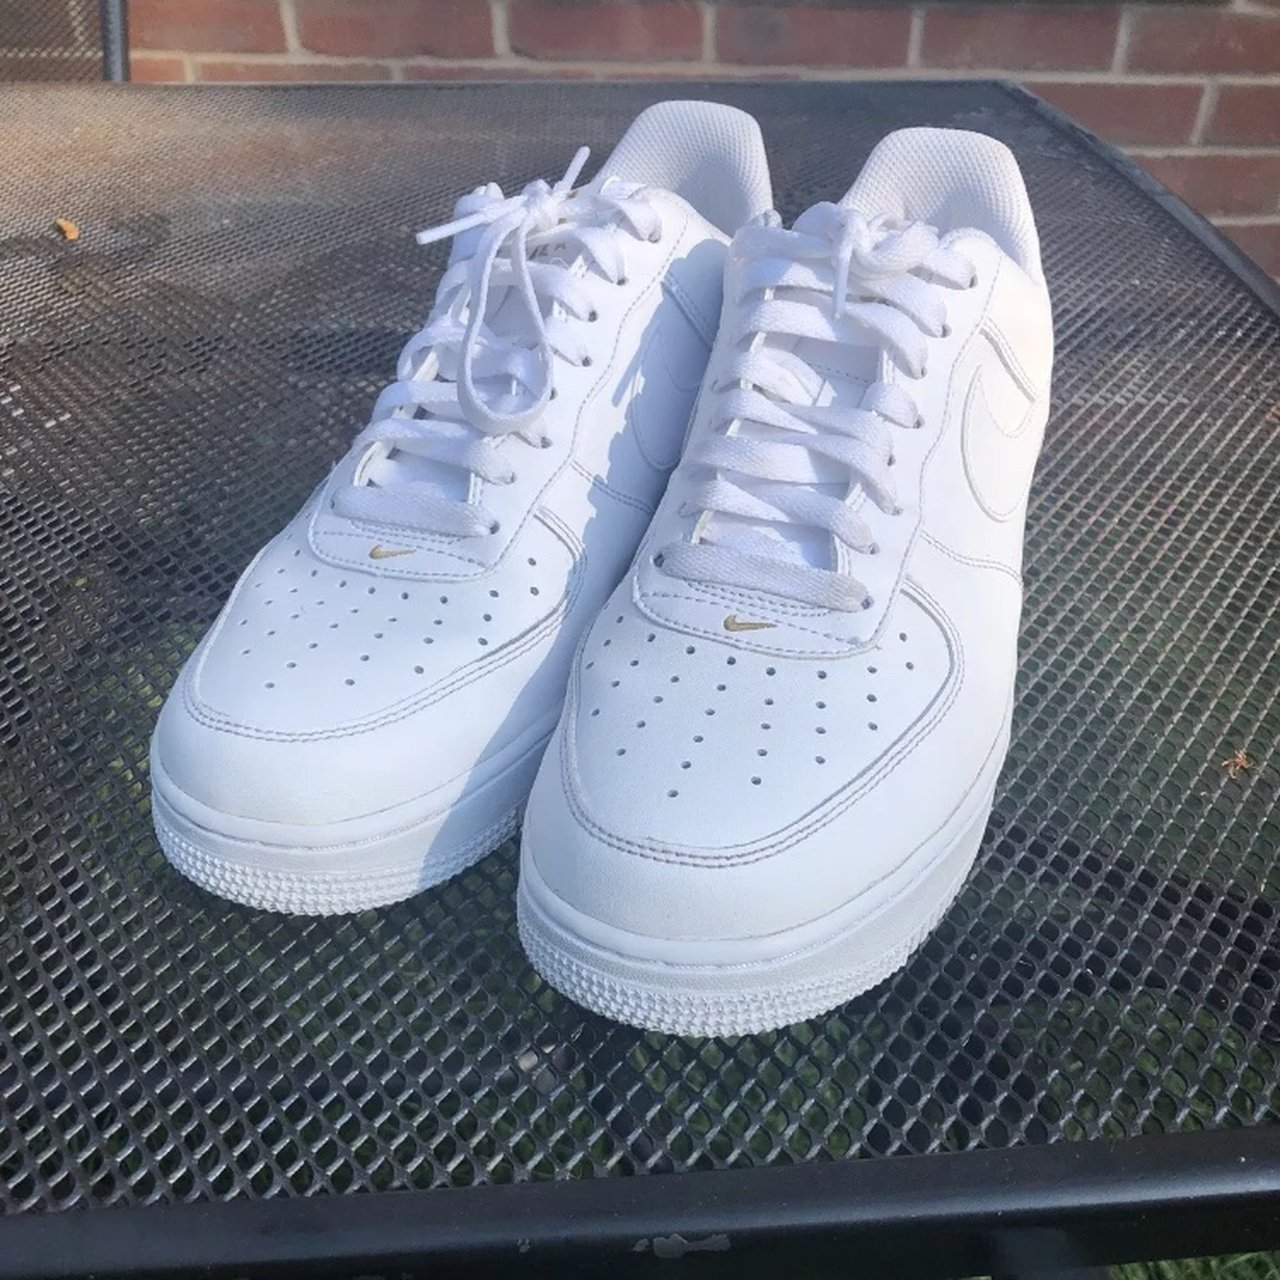 Restringir Mercurio contaminación  Nike white and gold AF1 '82 This item is like new... - Depop